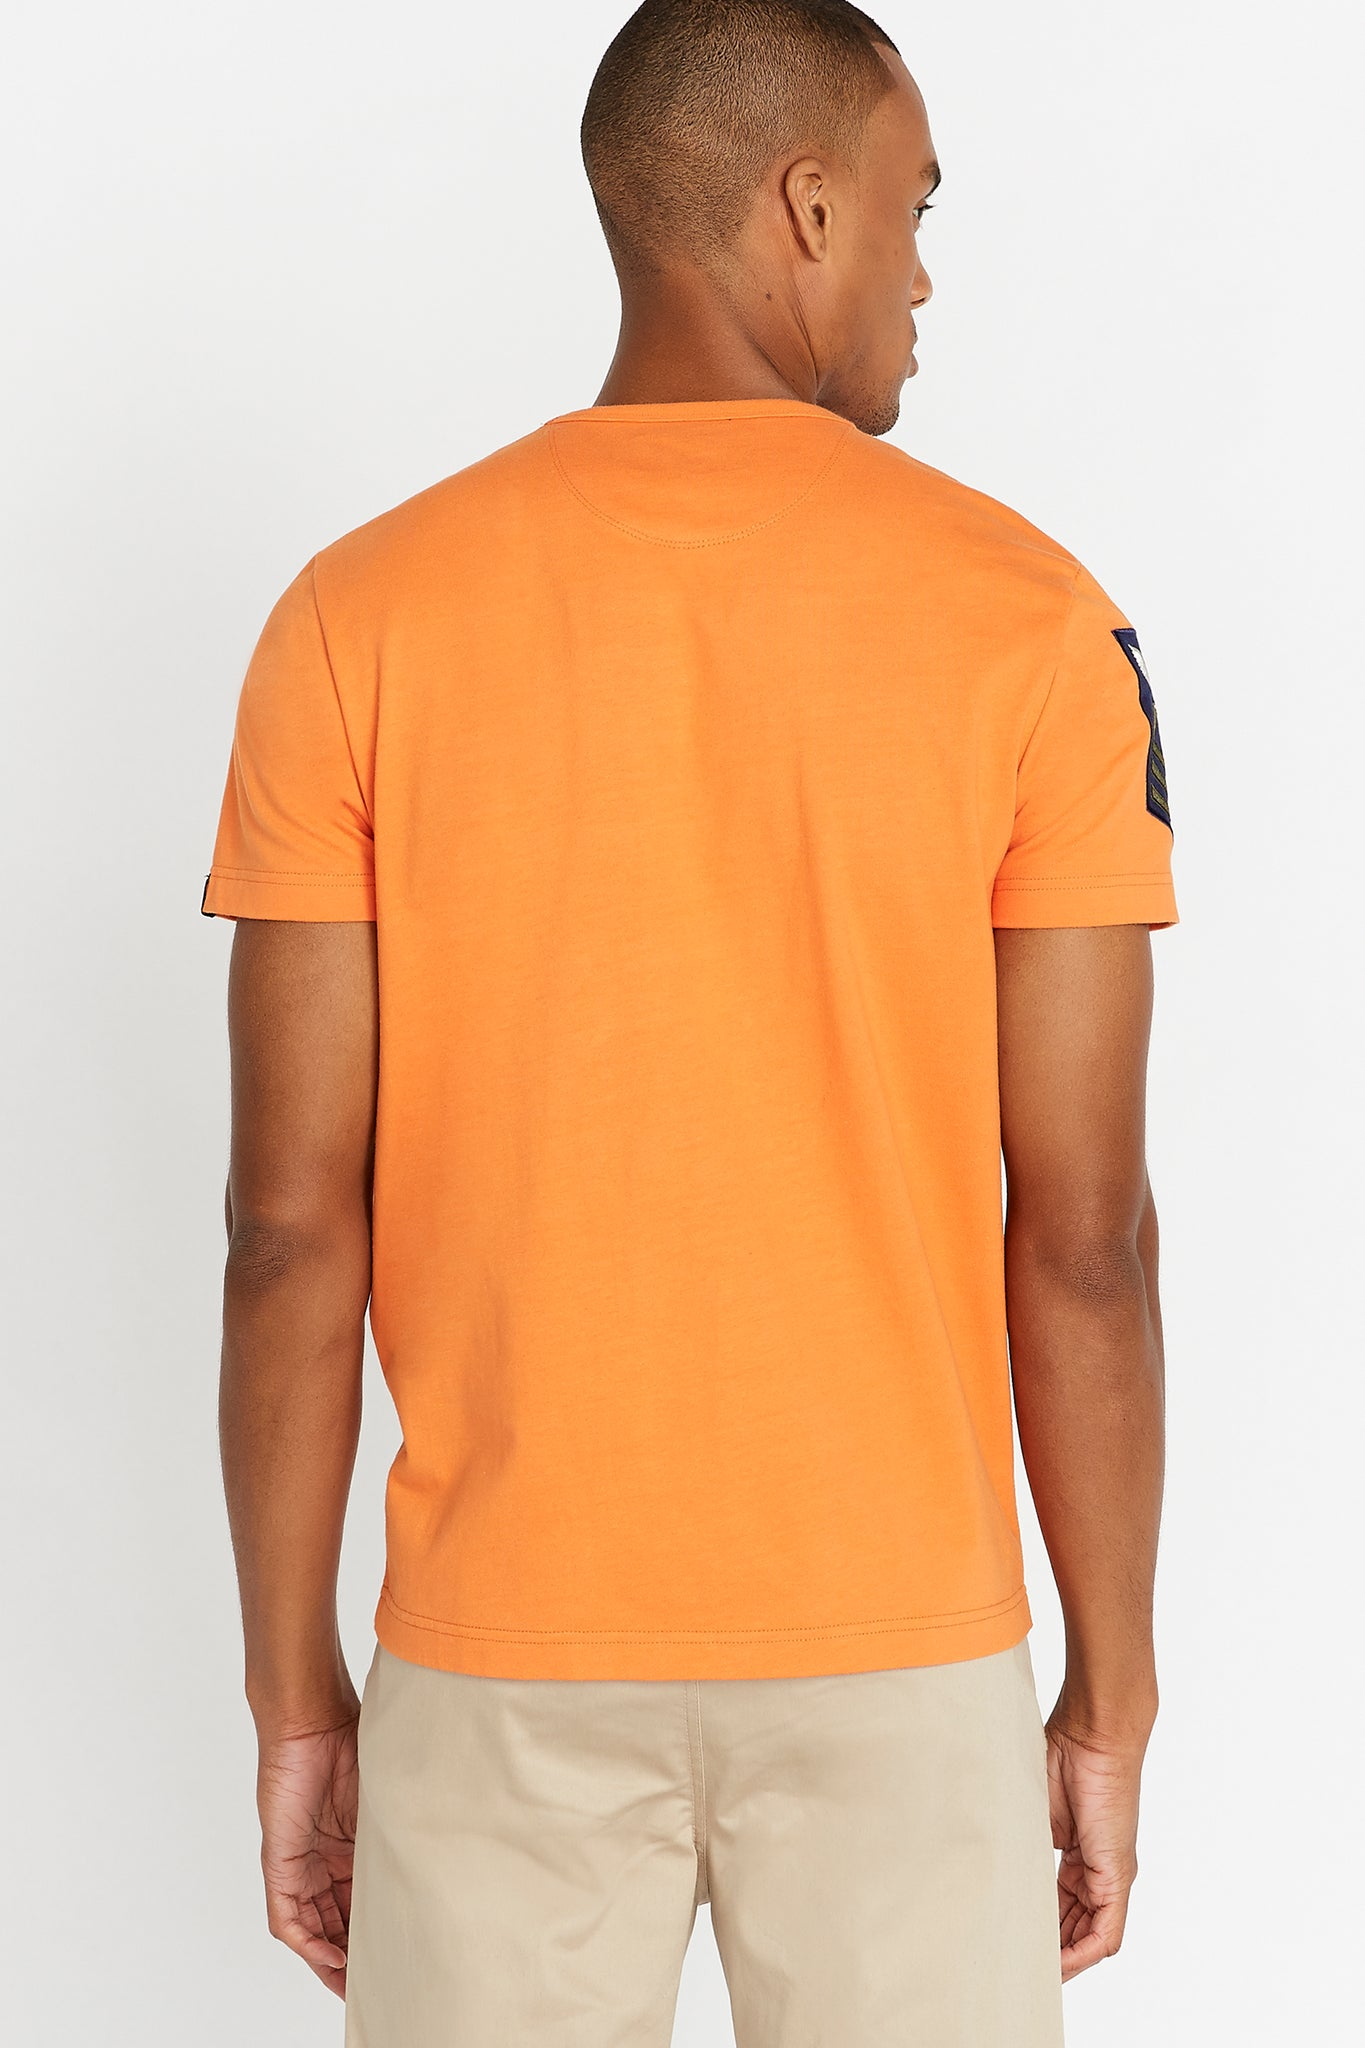 Back view of men wearing a light orange short sleeve crew T-shirt